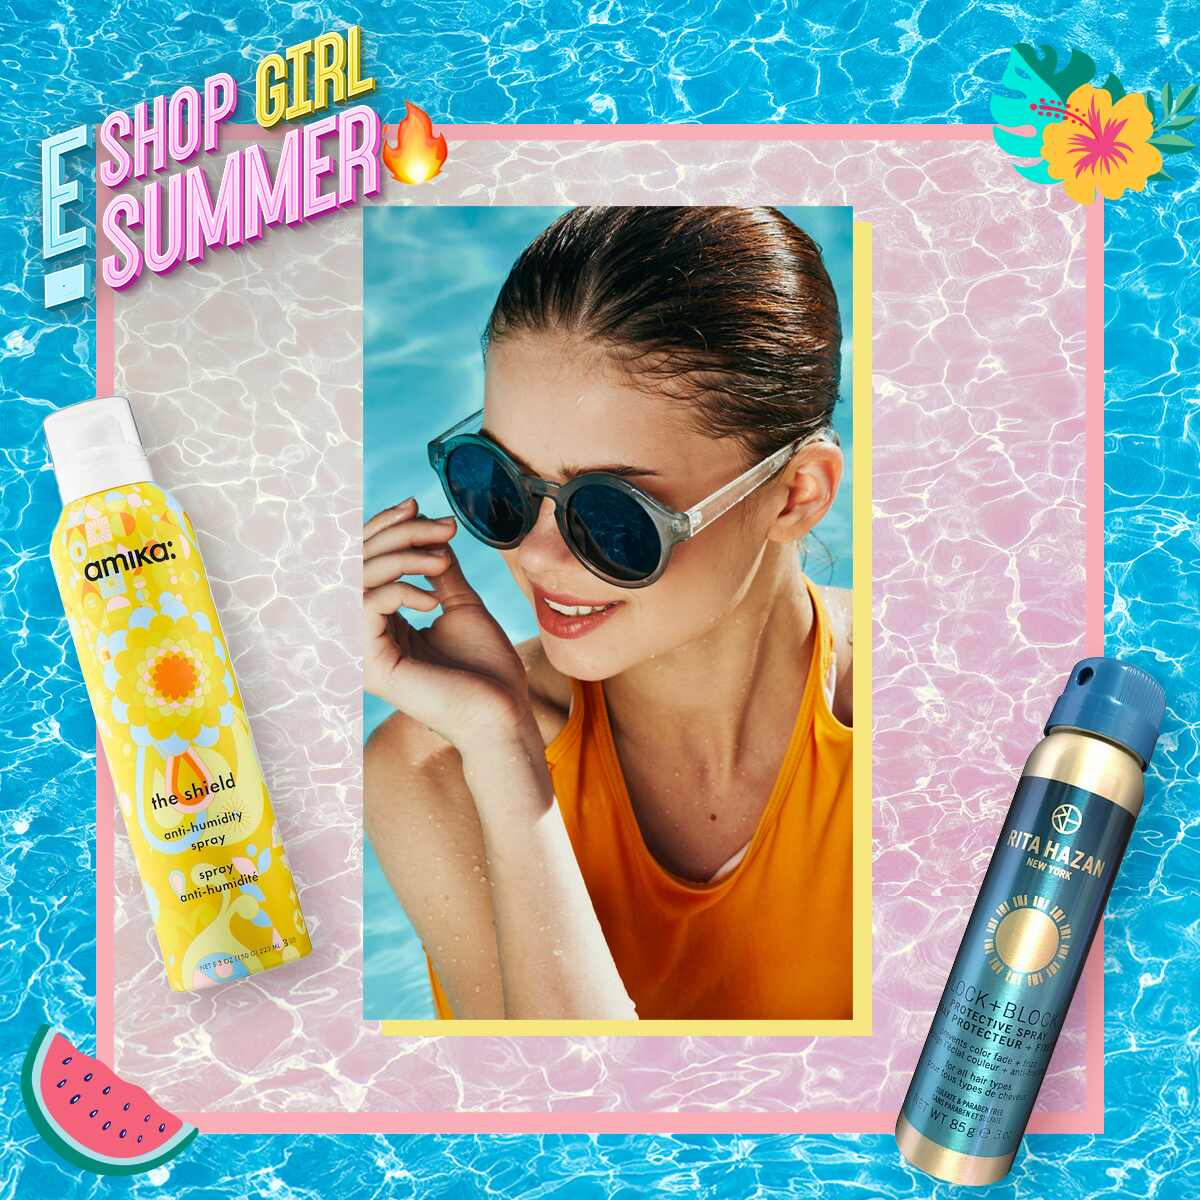 E-Comm: Shop Girl Summer - Protect Your Hair